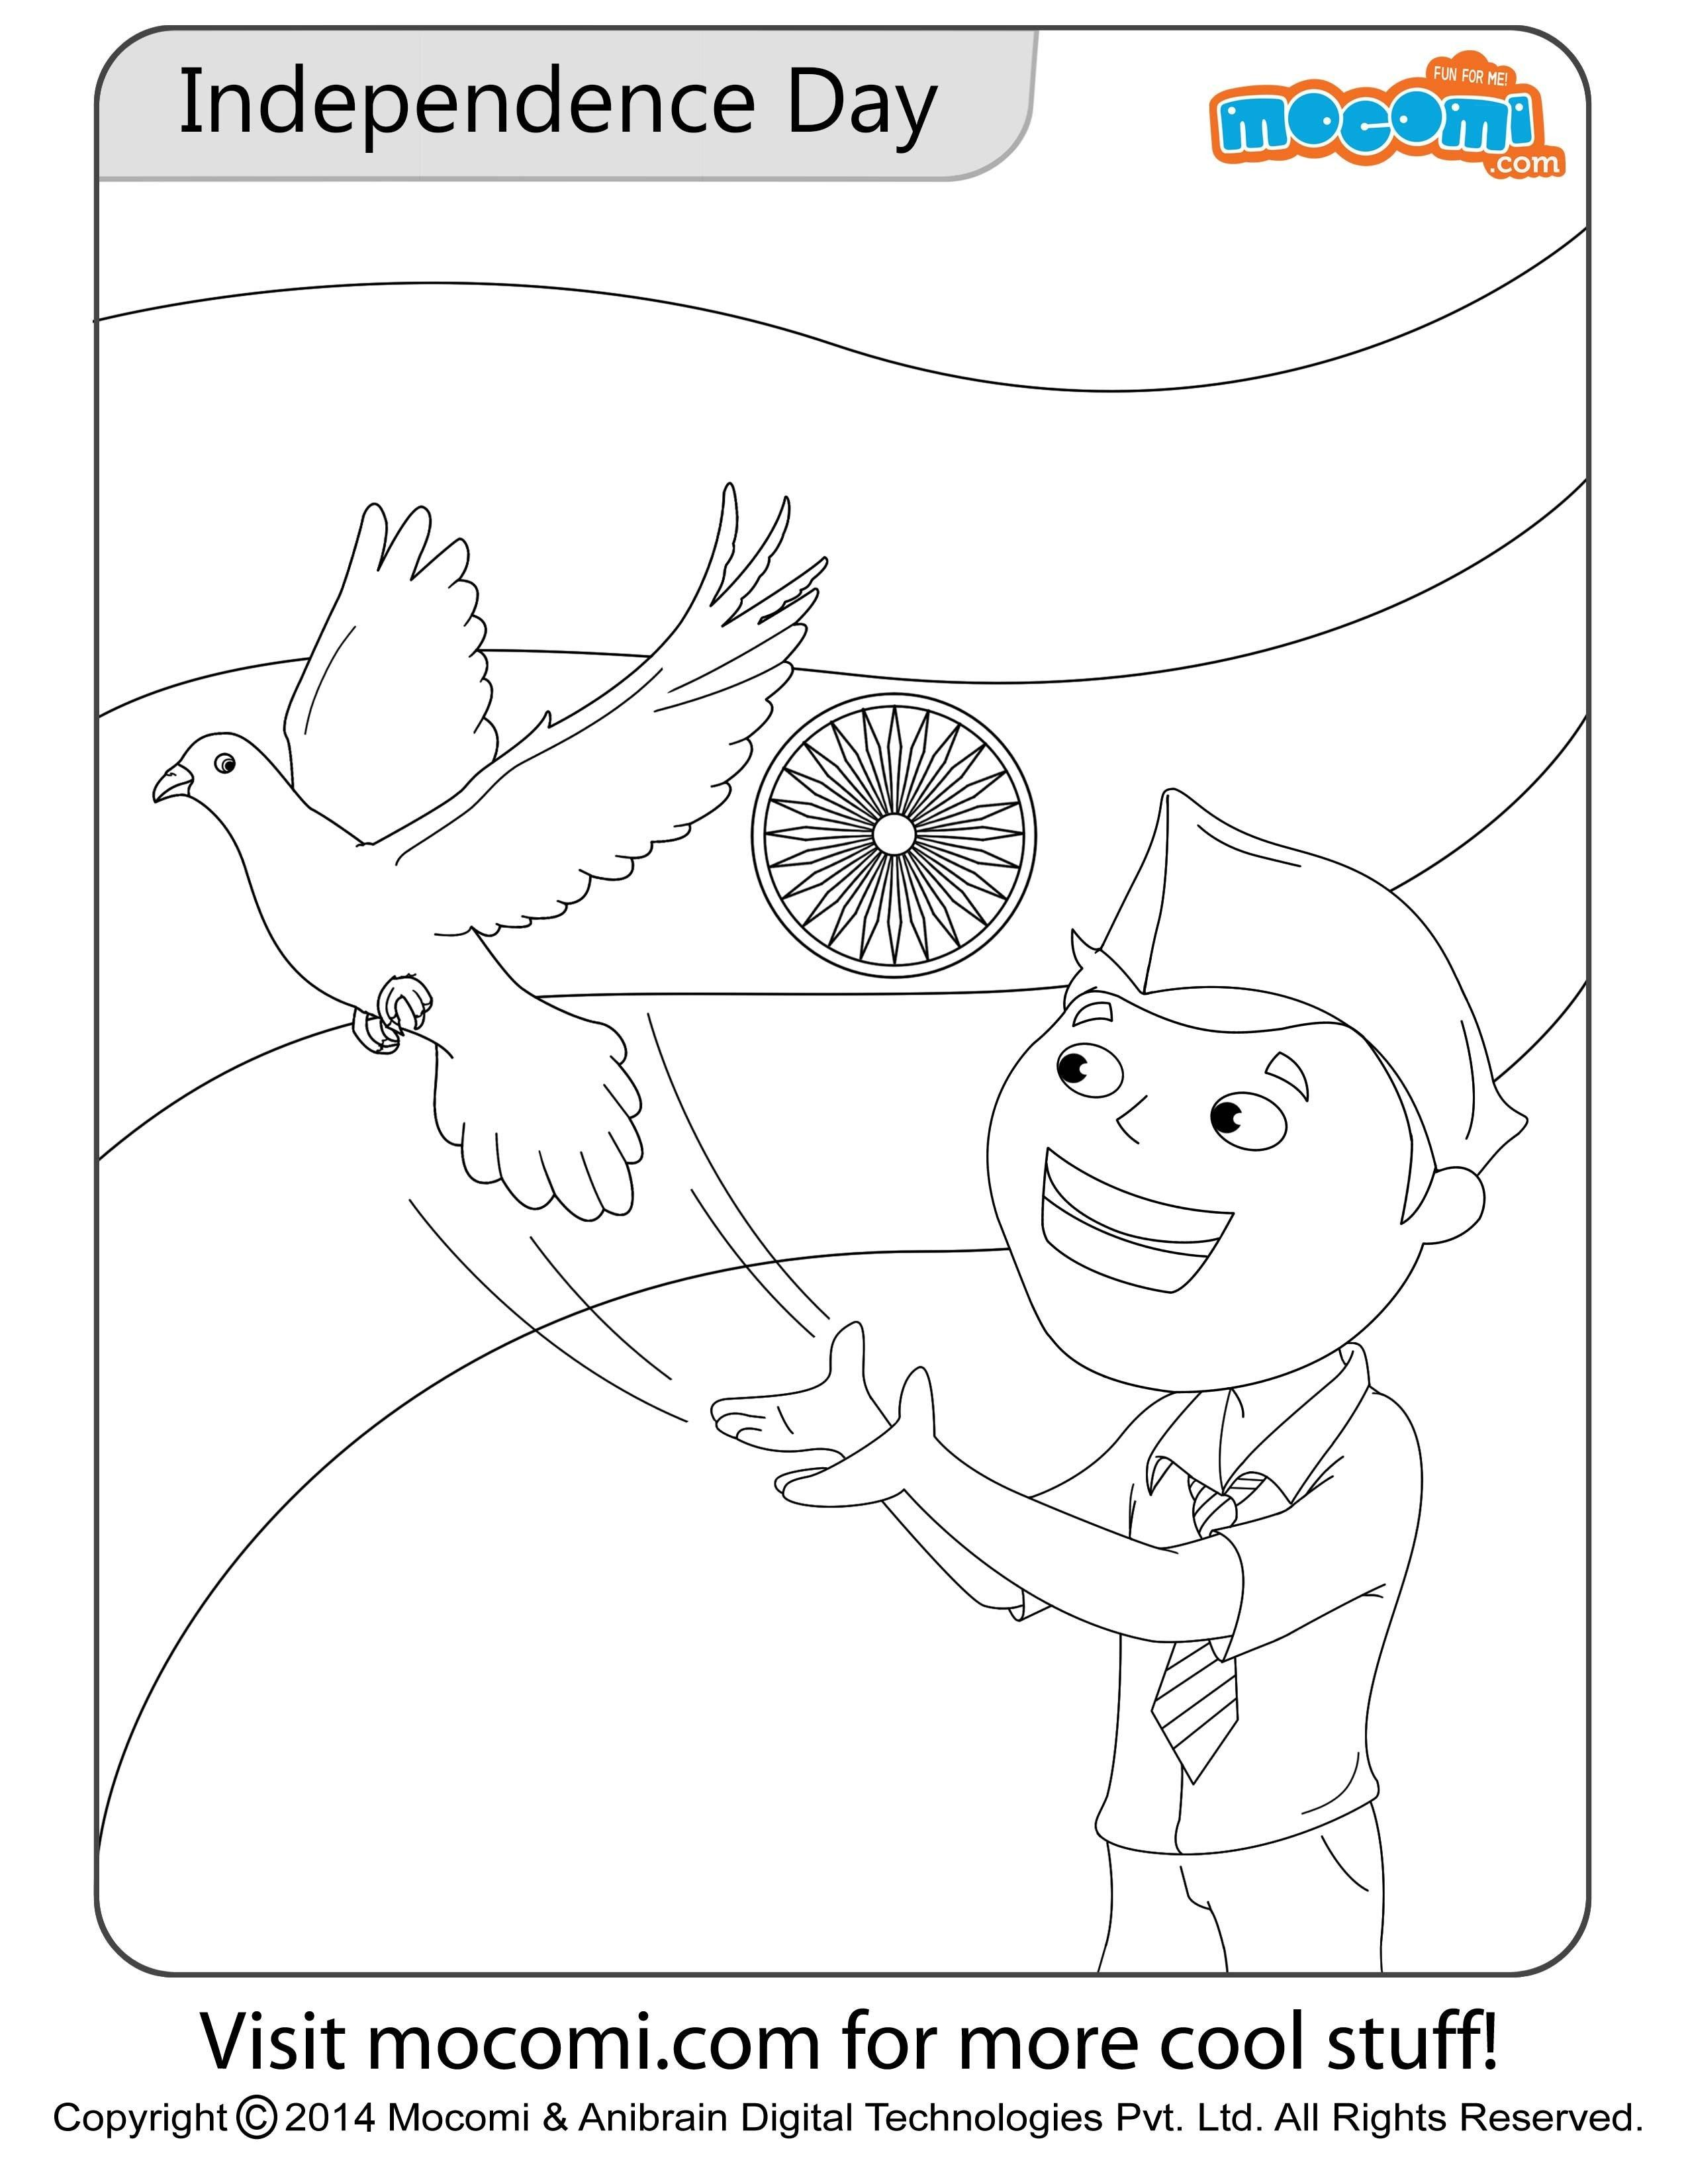 Unique Online Colouring Pages Coloring Coloringpages Coloringpagesforkids Coloringpagesf Independence Day Drawing Flag Coloring Pages Online Coloring Pages